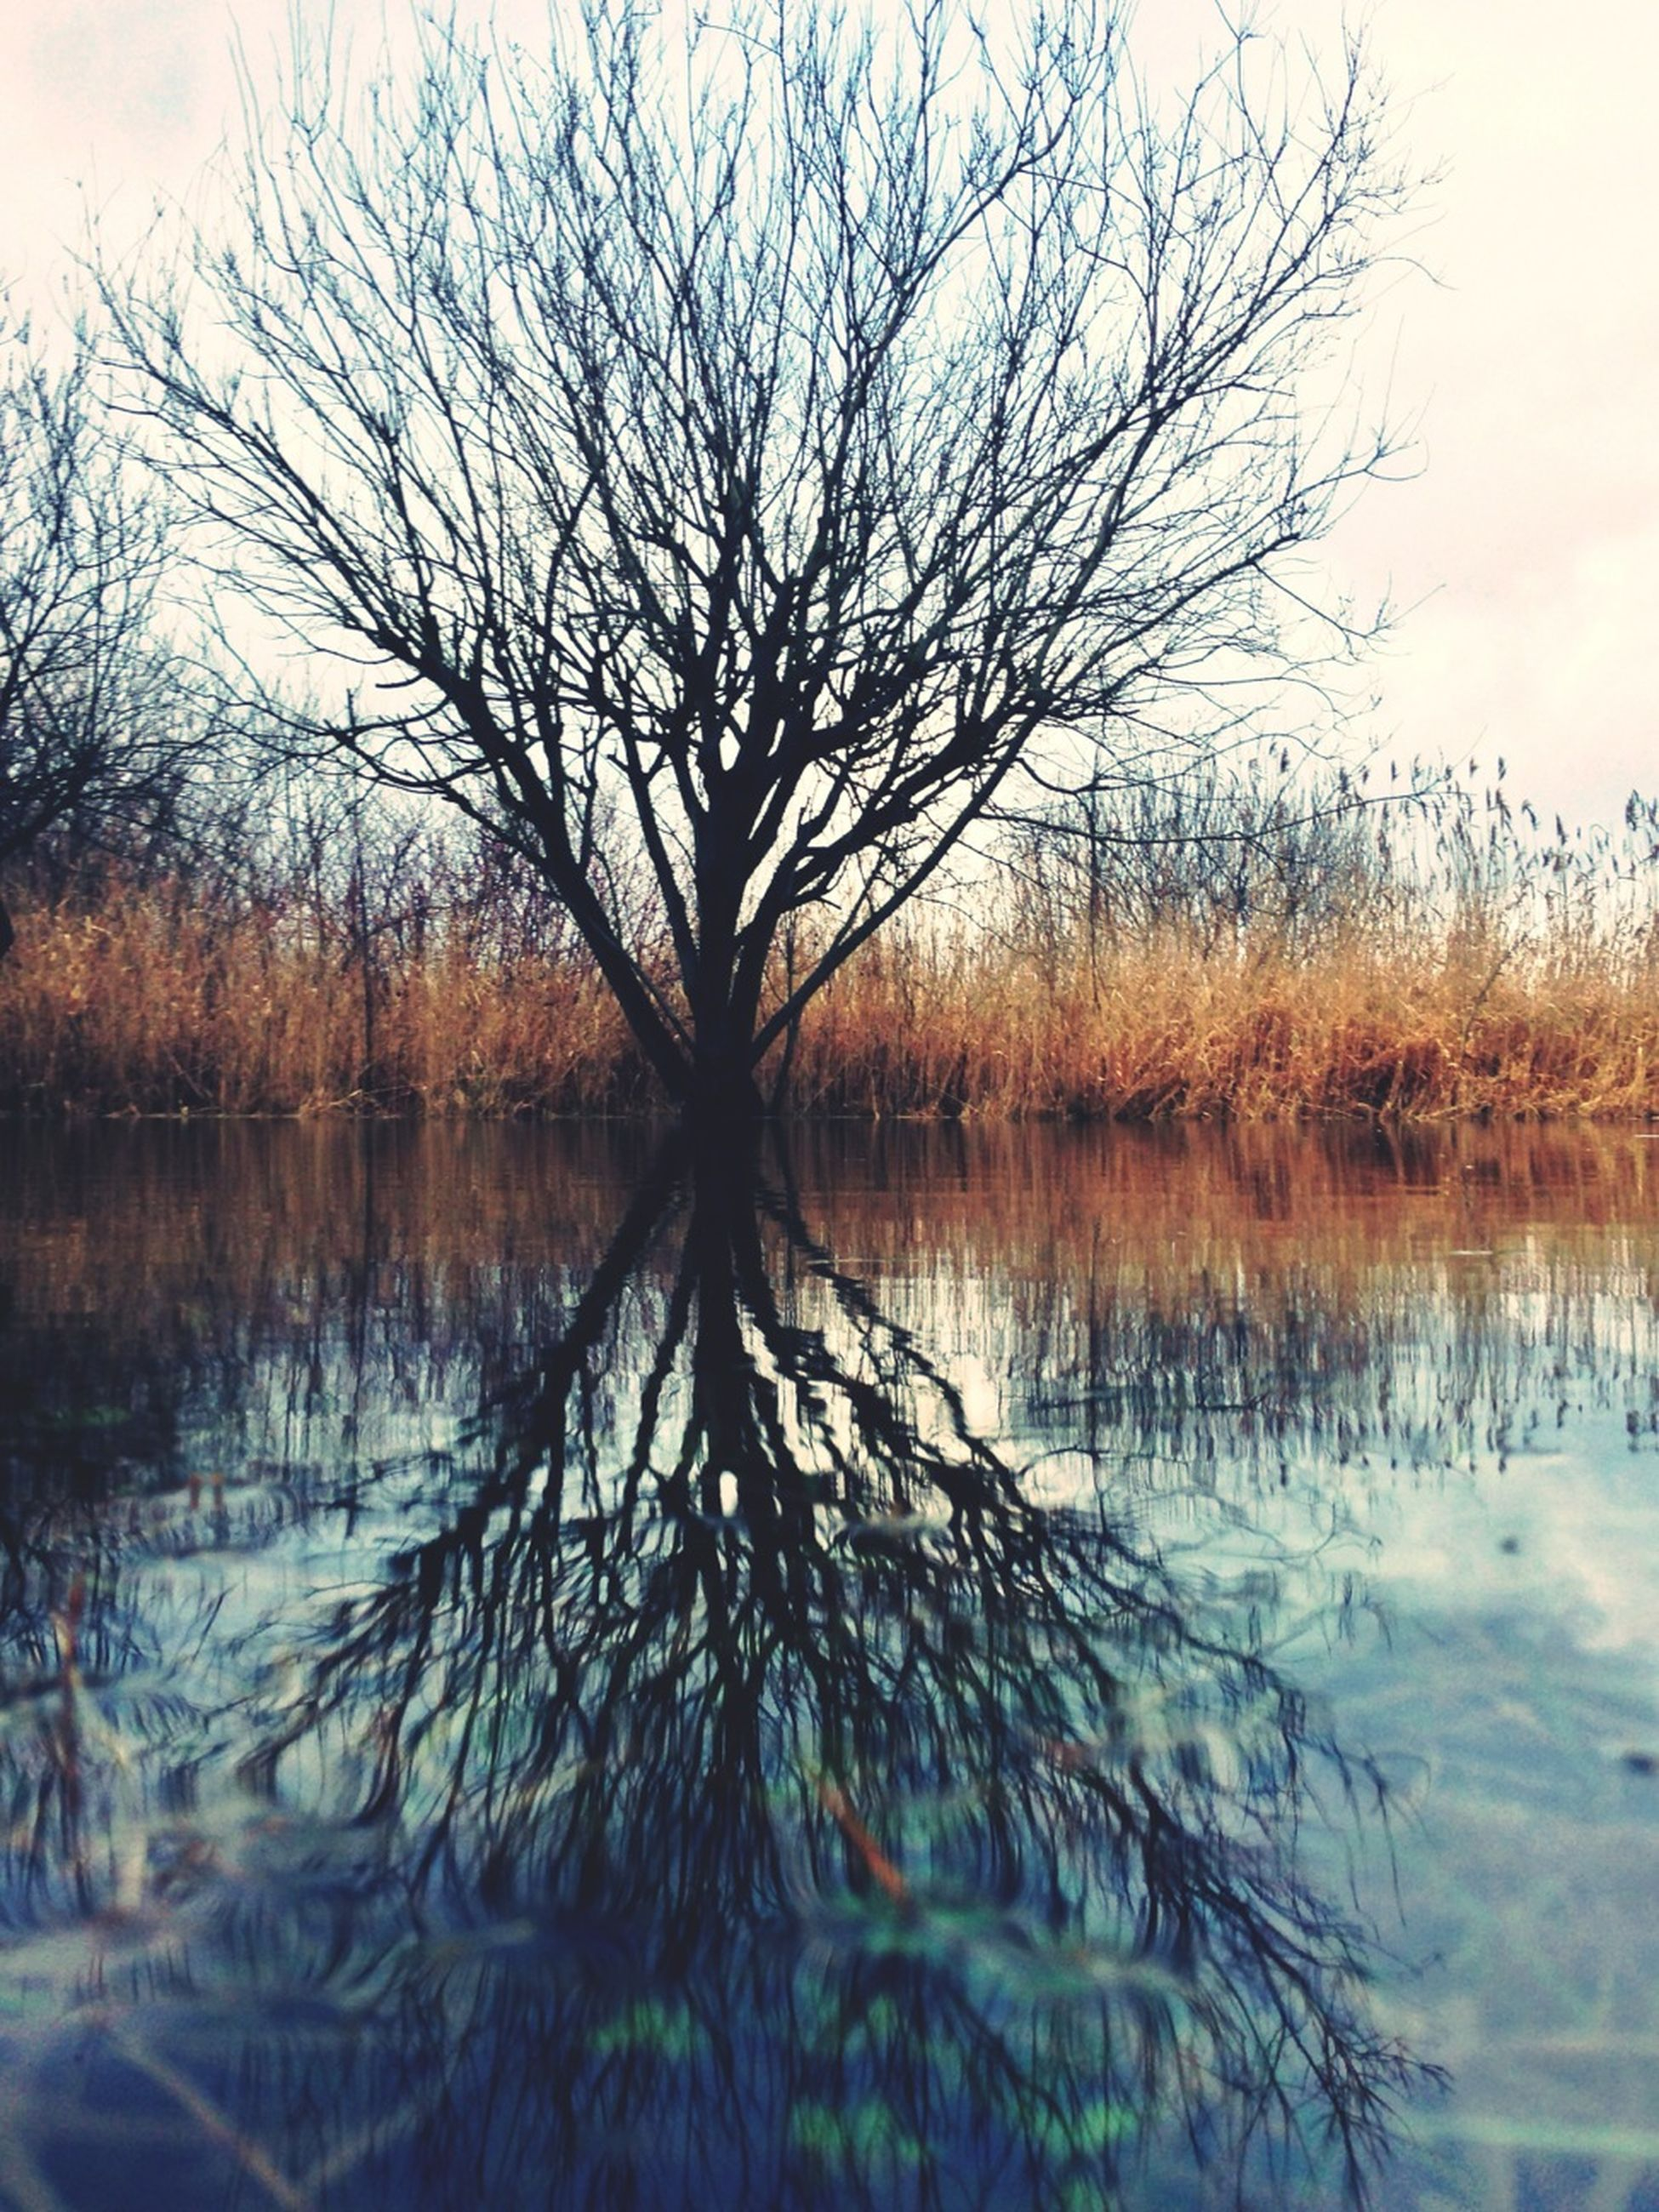 water, bare tree, lake, reflection, tranquility, tranquil scene, tree, waterfront, scenics, branch, beauty in nature, nature, sky, standing water, lakeshore, idyllic, calm, outdoors, no people, non-urban scene